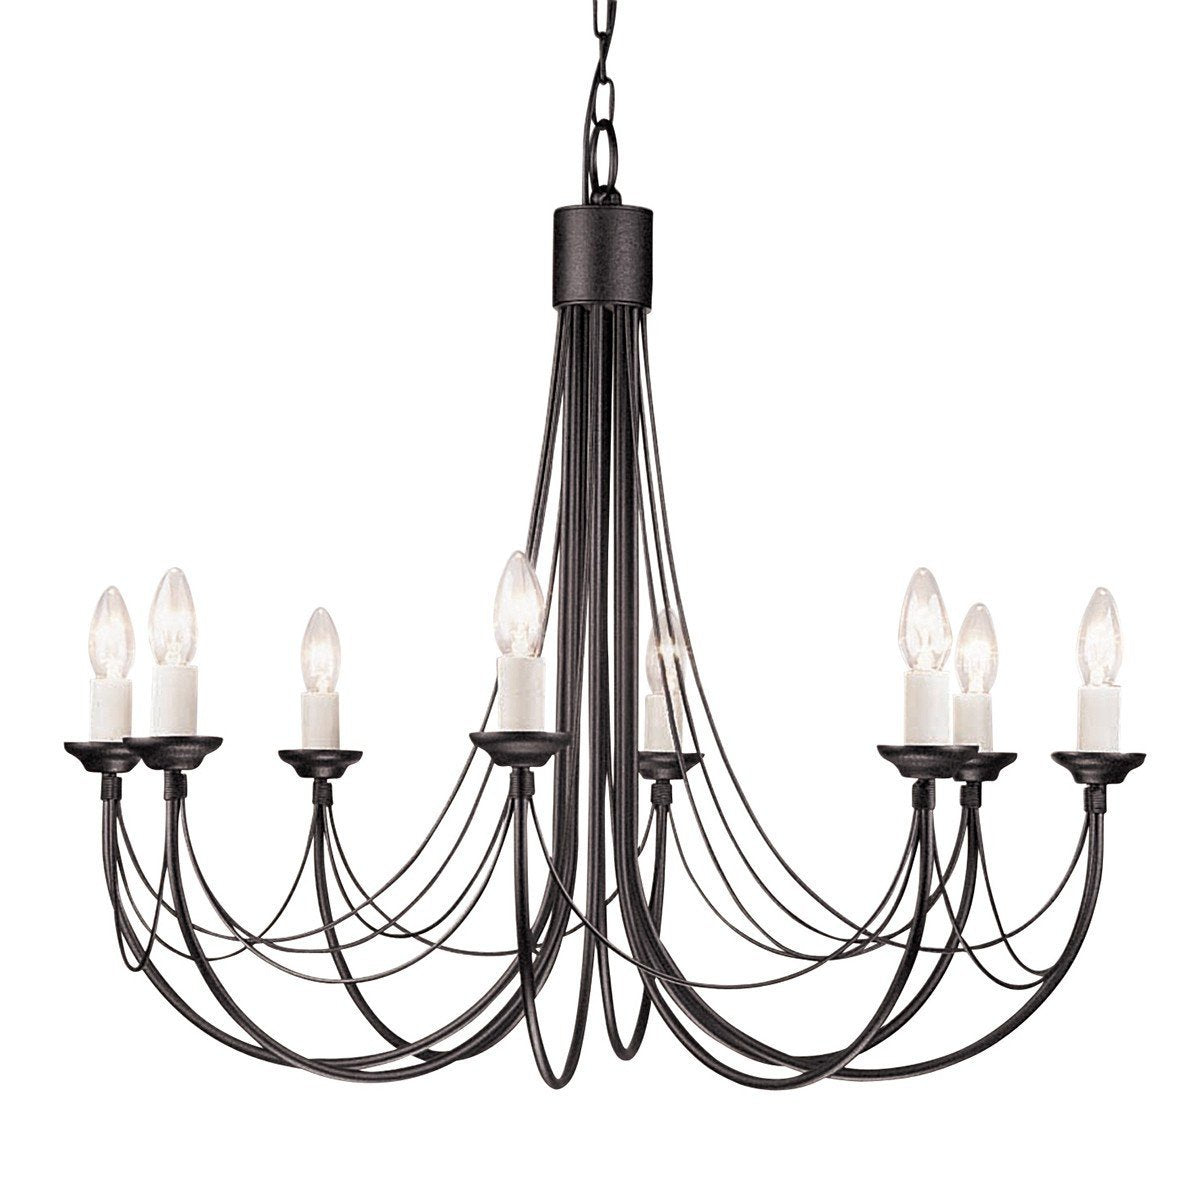 Carisbrooke 8 Arm Chandelier Black - London Lighting - 1